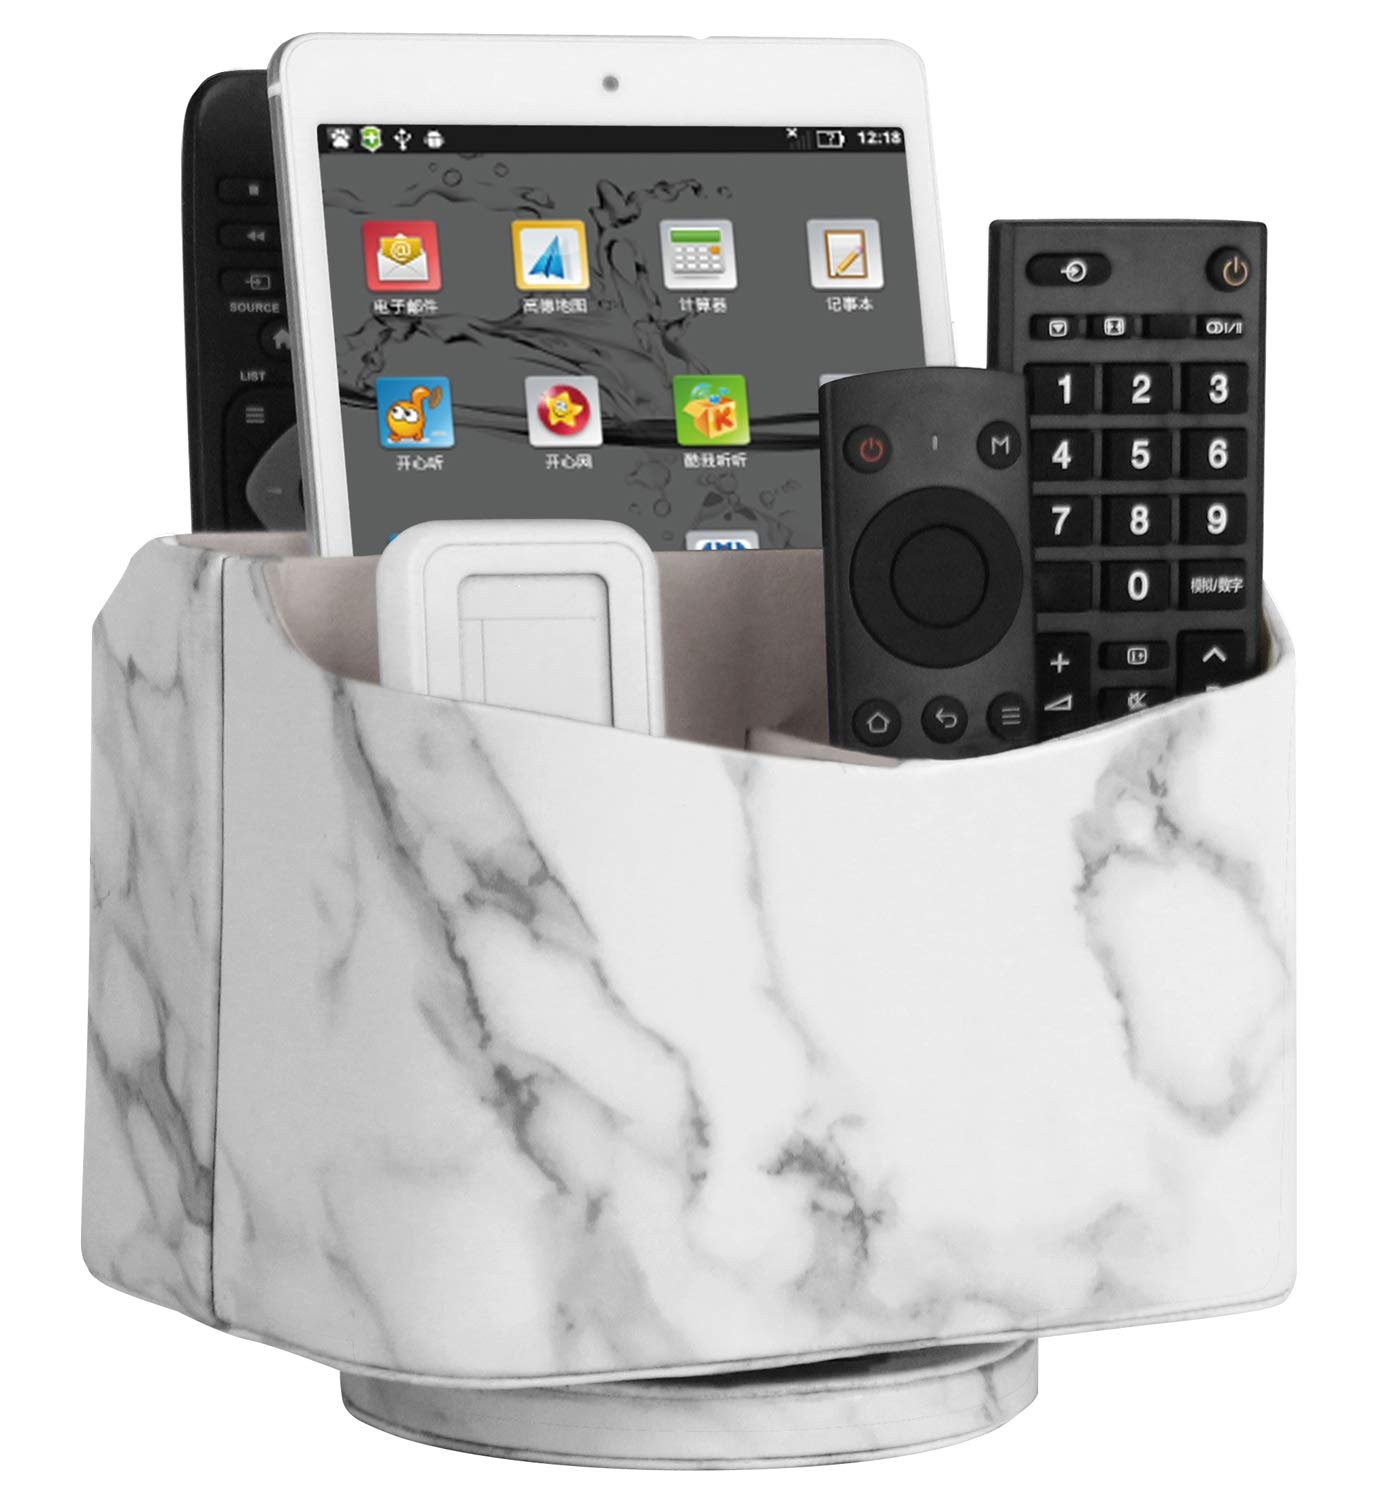 HofferRuffer Spinning Remote Control Holder, Remote Controller Holder, Remote Caddy, Media Storage Organizer, Spinning Remote Control Organizer, PU Leather (Marble) by HofferRuffer